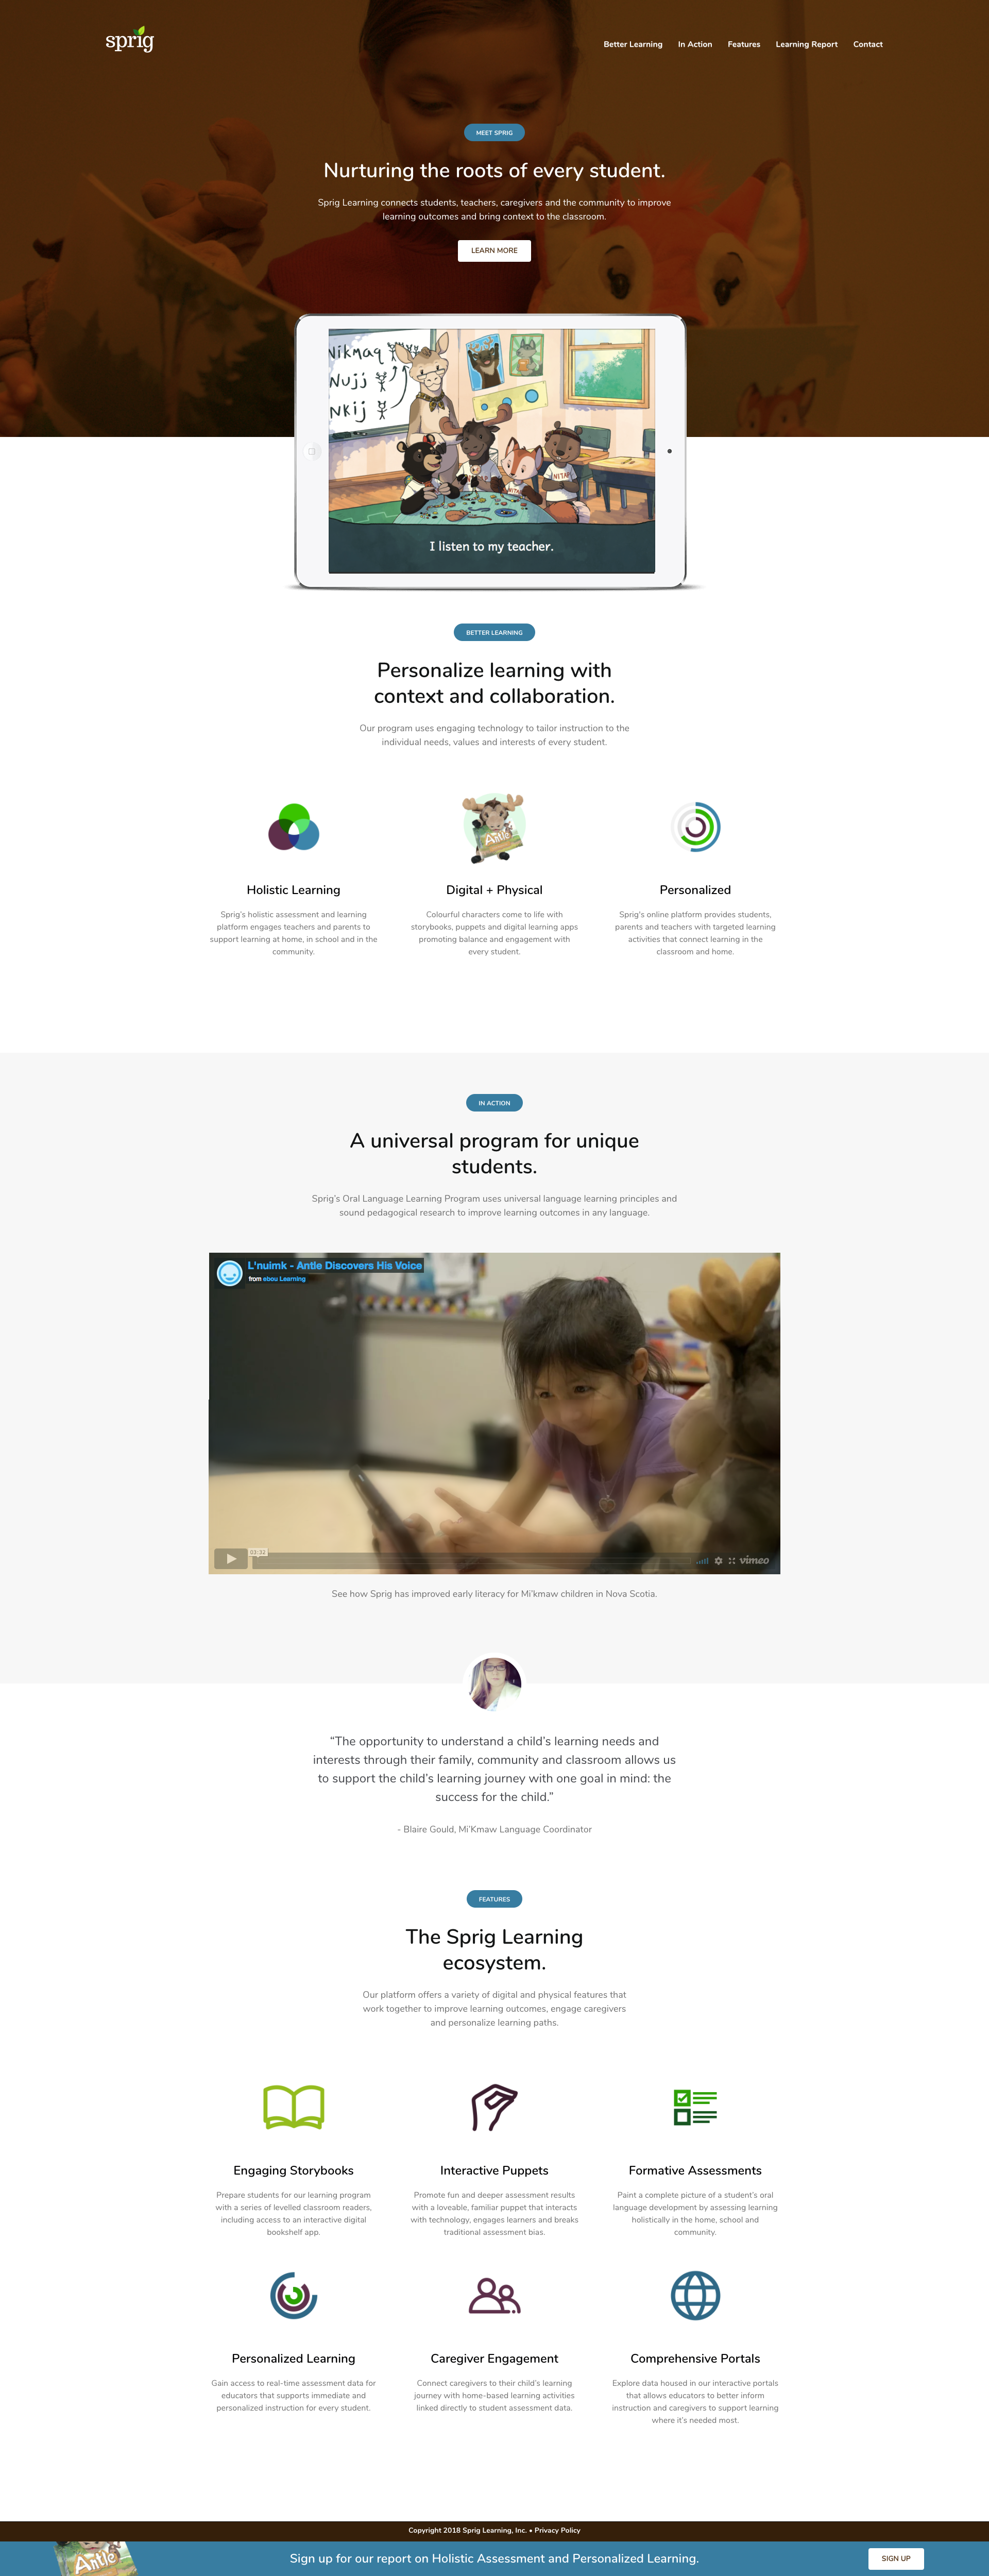 screencapture-learnwithsprig-1519182160133.png